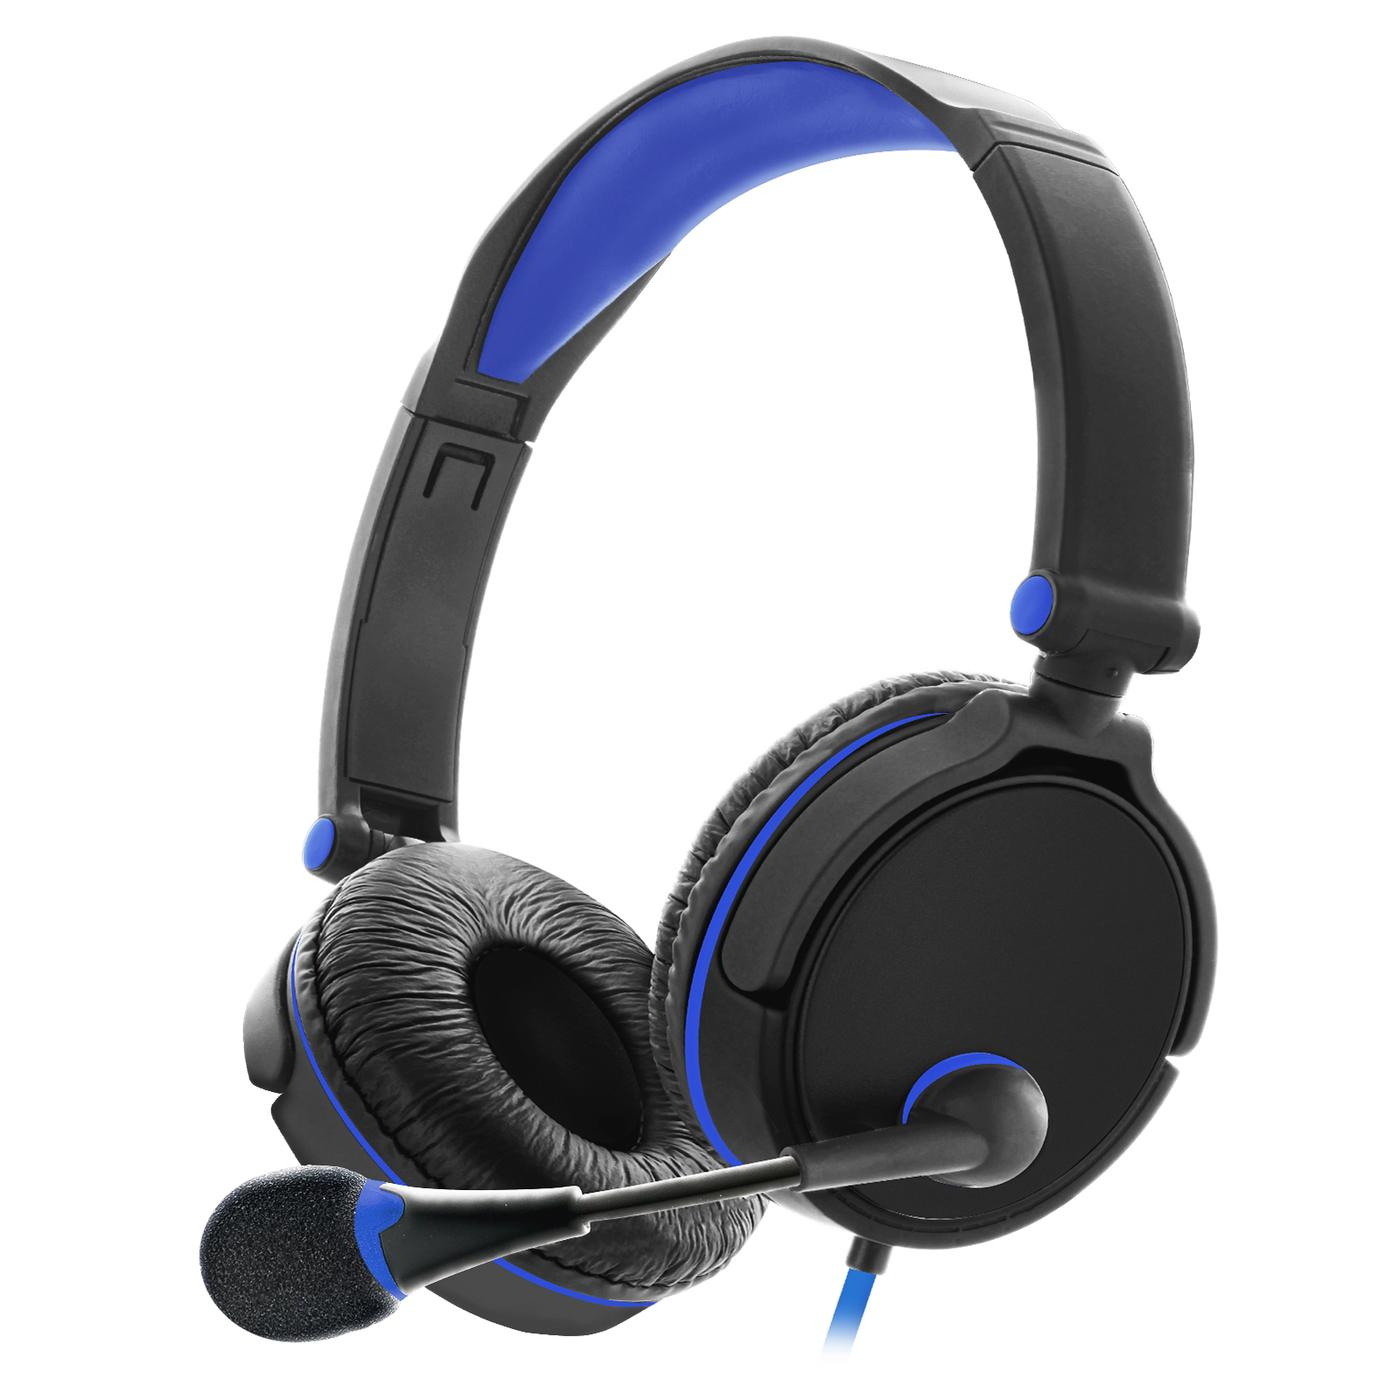 Sentry Industries GX50: Gaming Headset In Blue